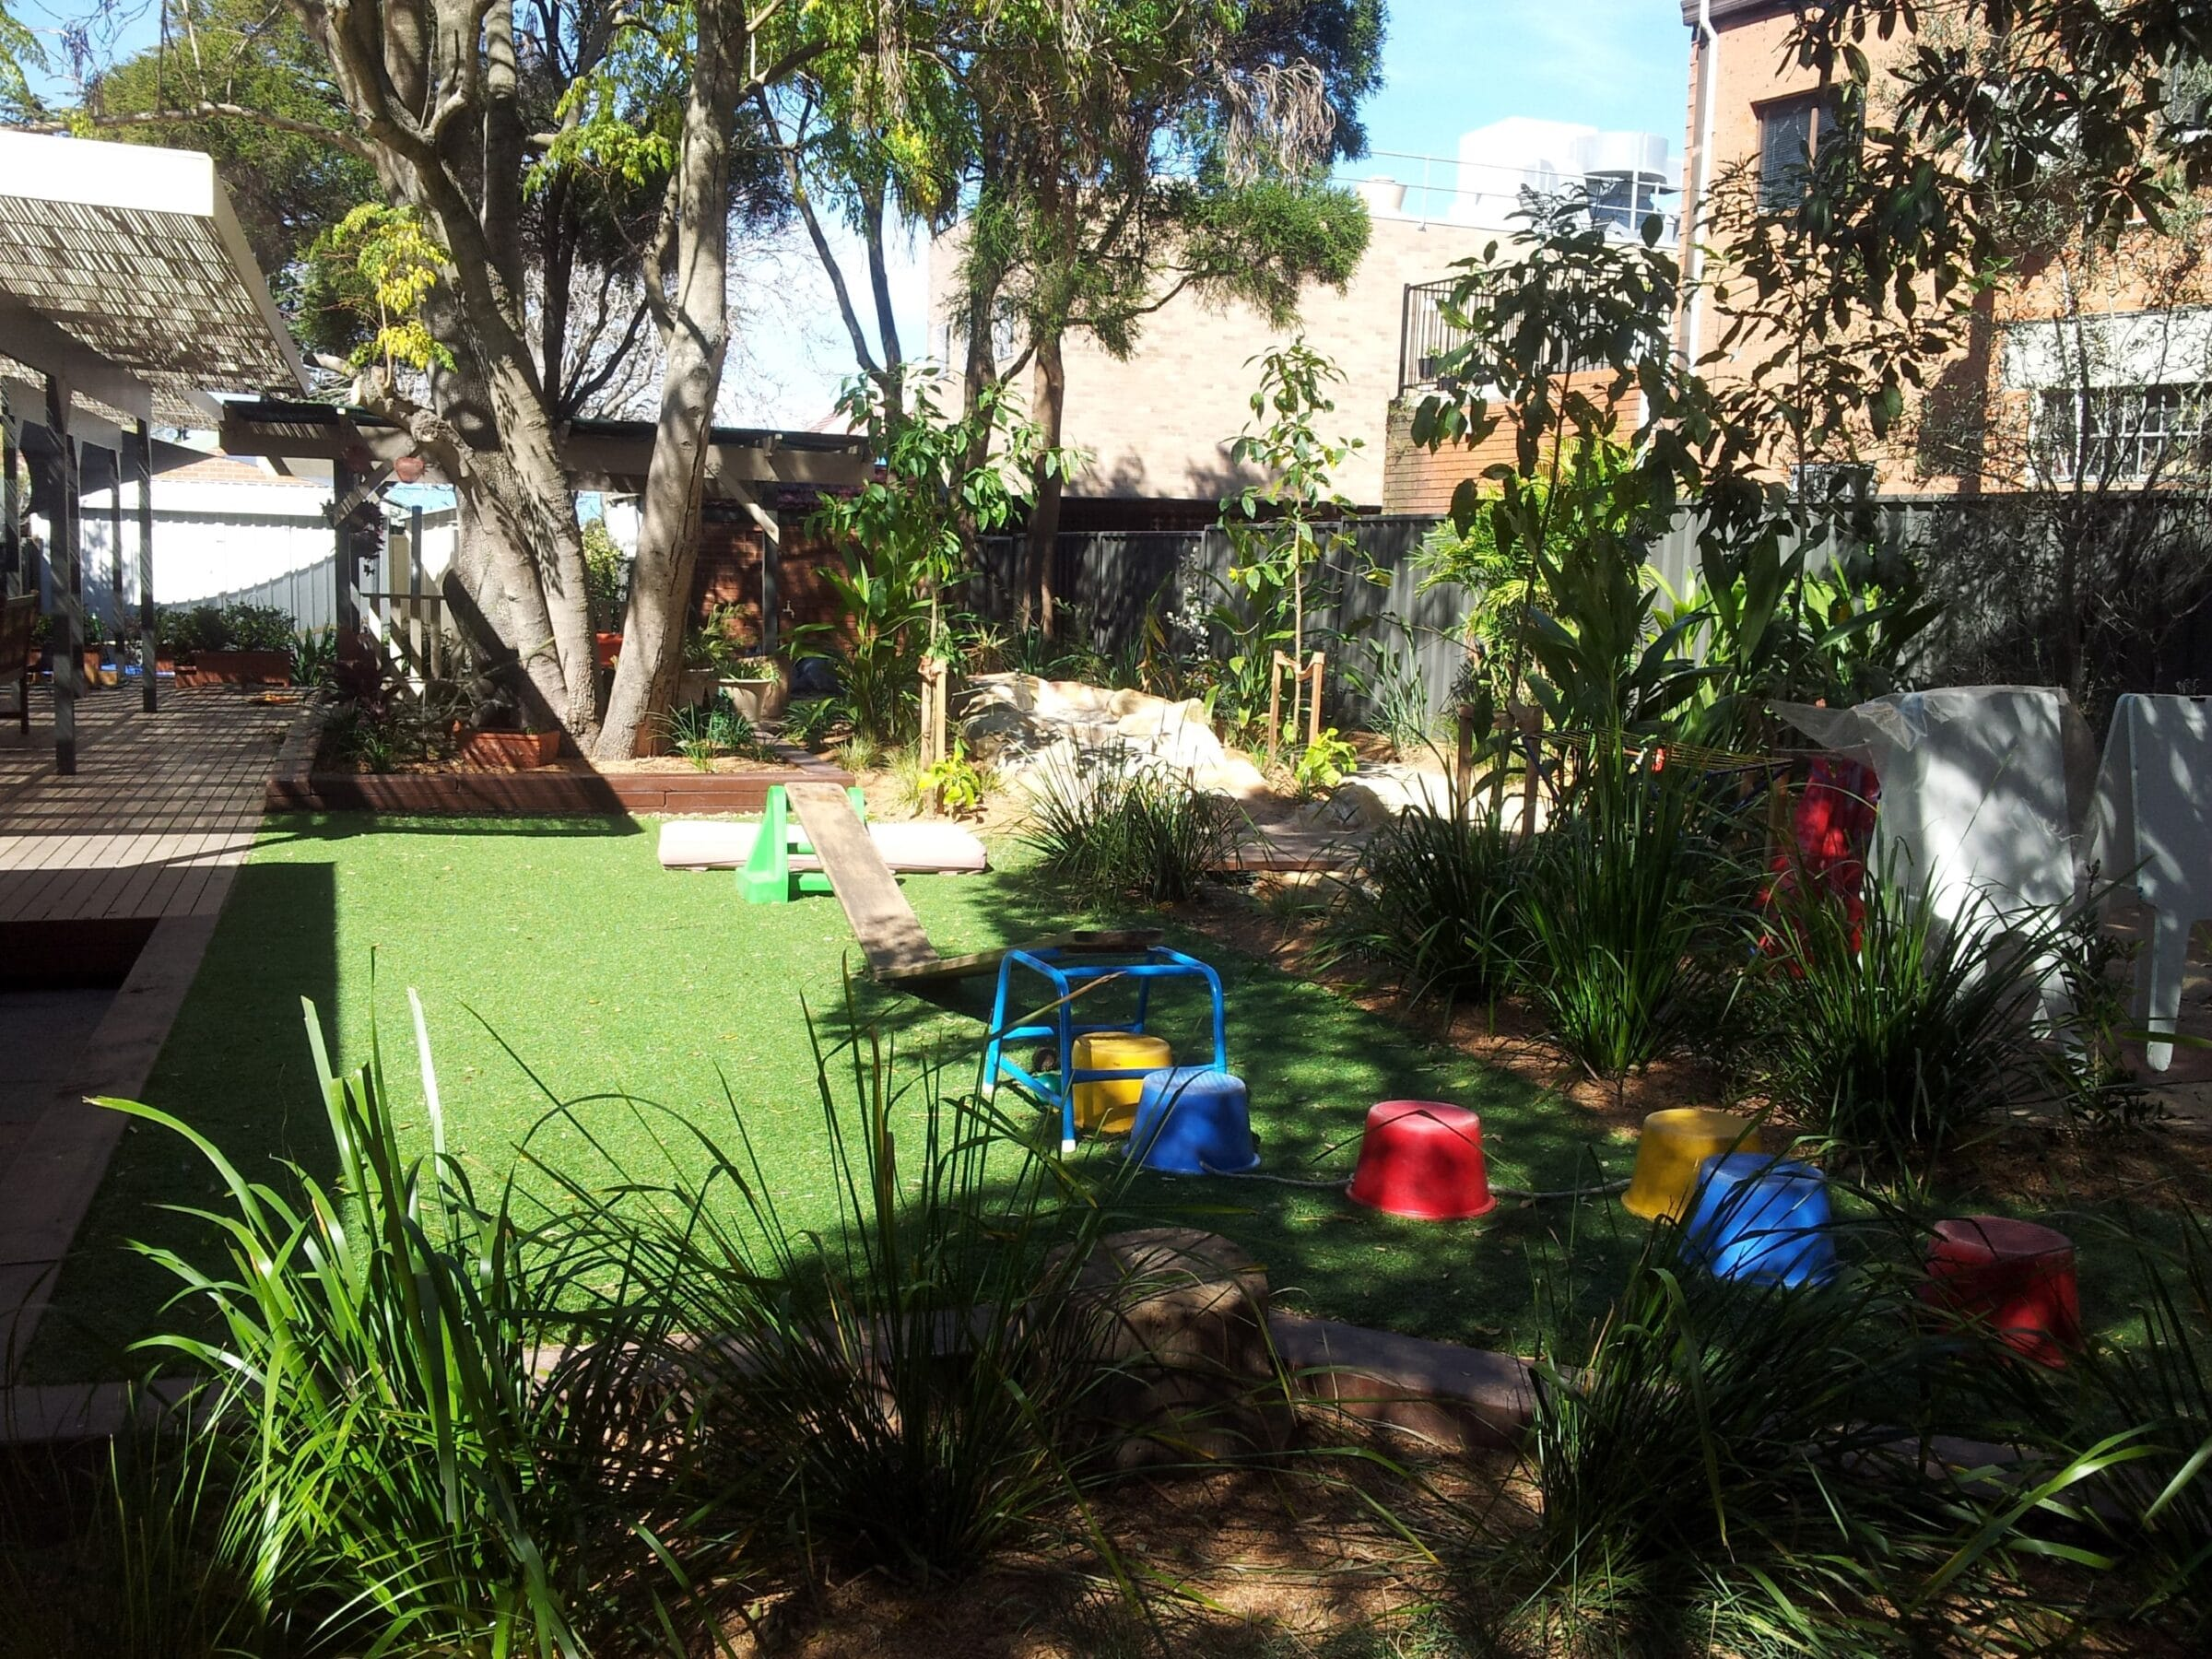 Exciting Sydney Playgrounds Design - Pleasantview Industries